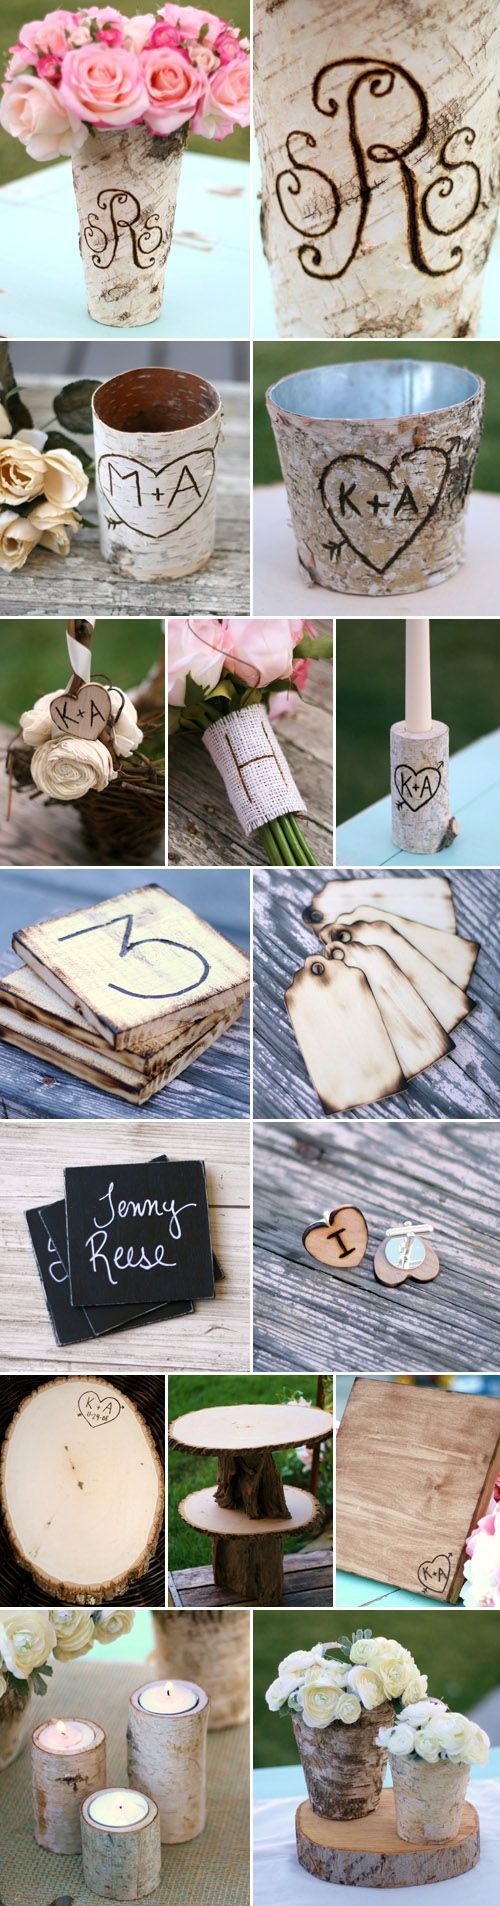 Rustic Woodland Wedding Decor and Accessories